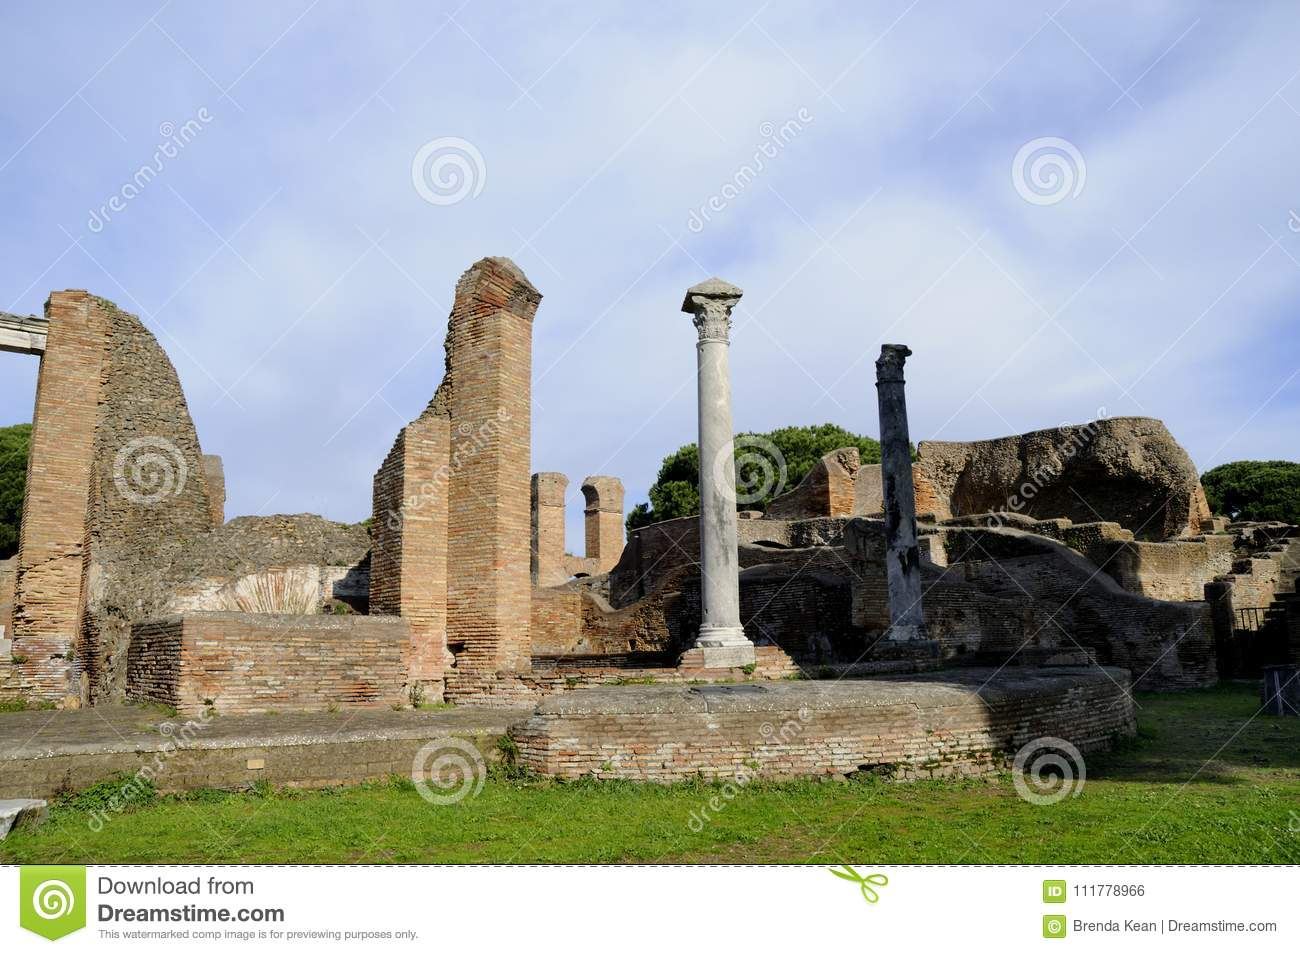 The archaeological site of Ostia Antica which was the old port of Rome in Italy